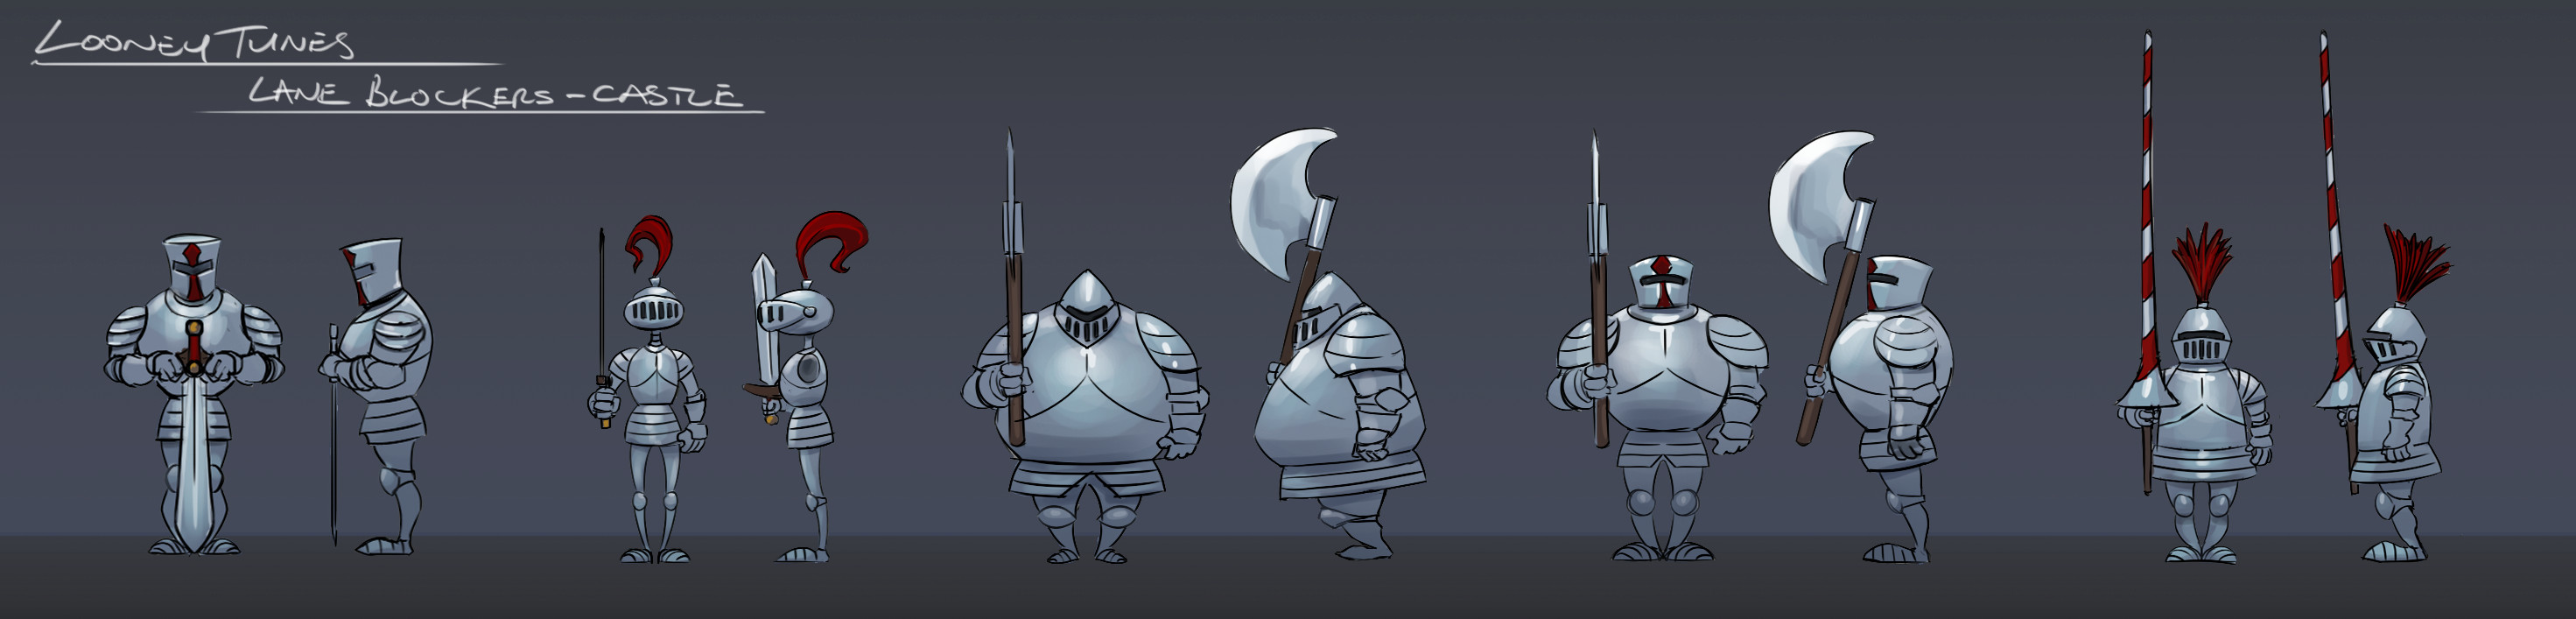 'Looney Tuney' knights for the scary castle level